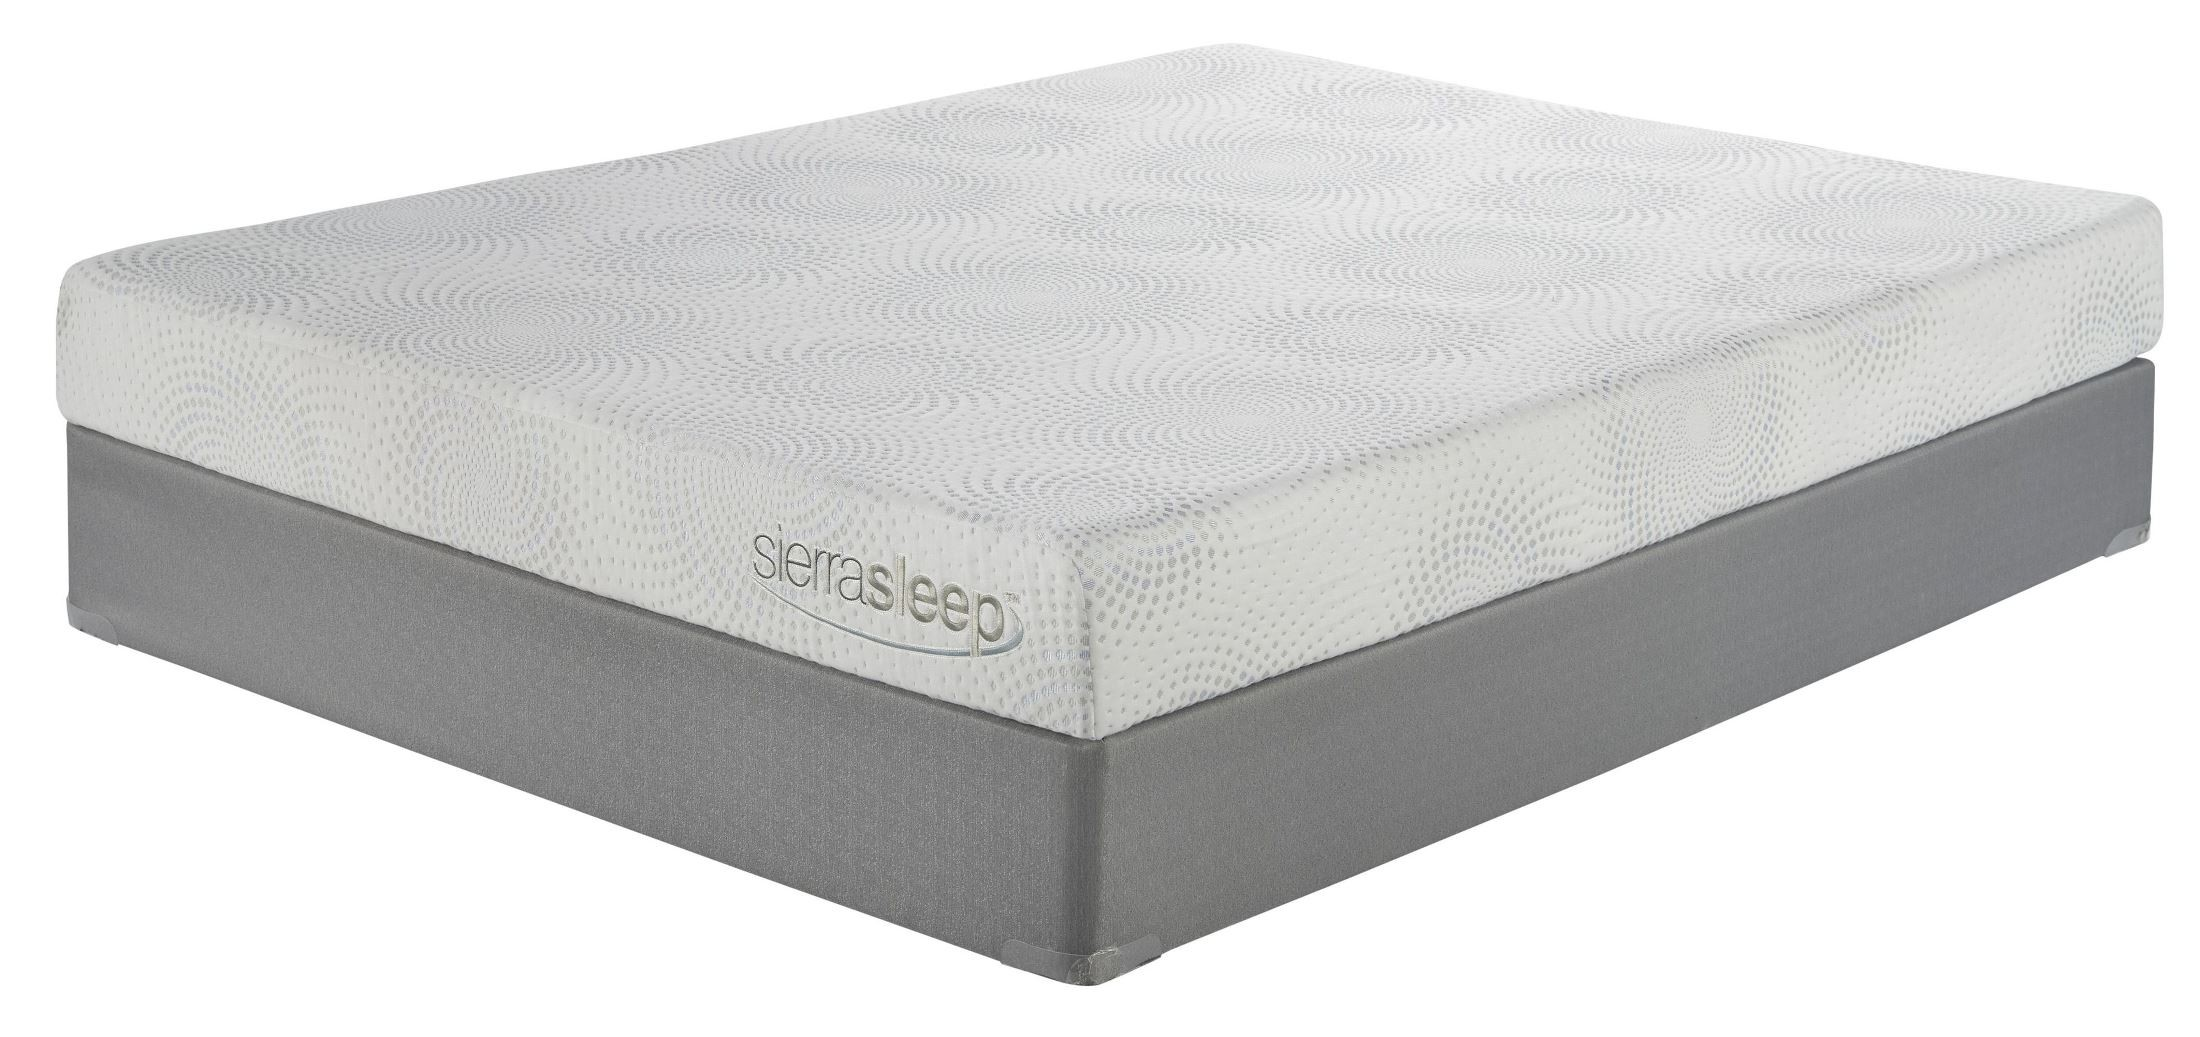 7 Inch Gel Memory Foam White King Mattress With Foundation